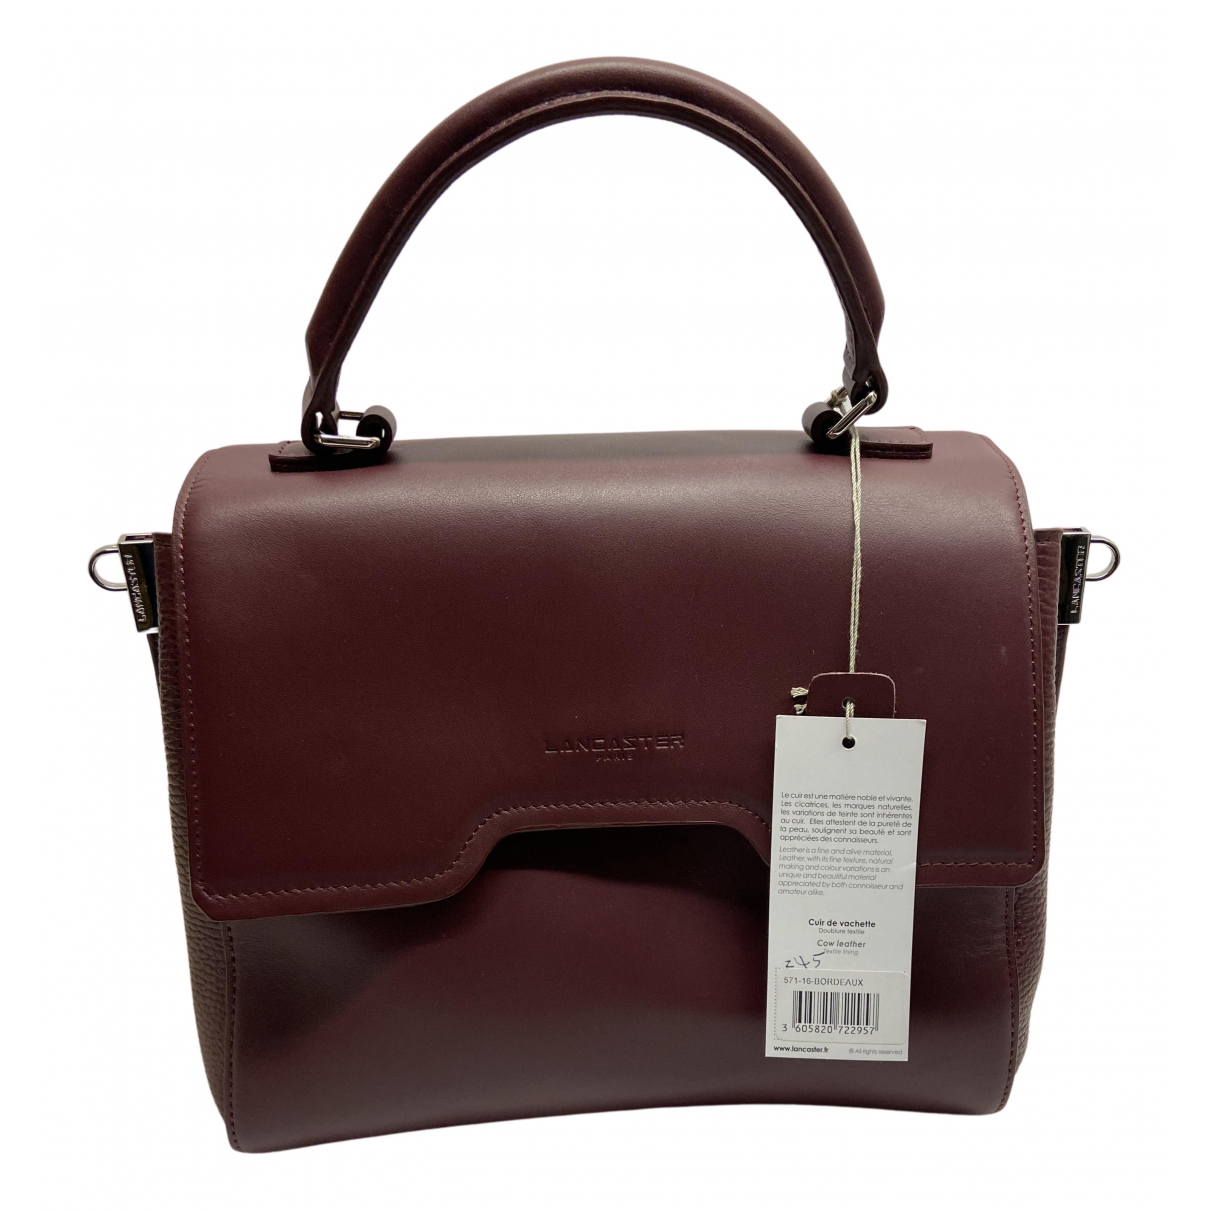 Lancaster N Burgundy Leather handbag for Women N